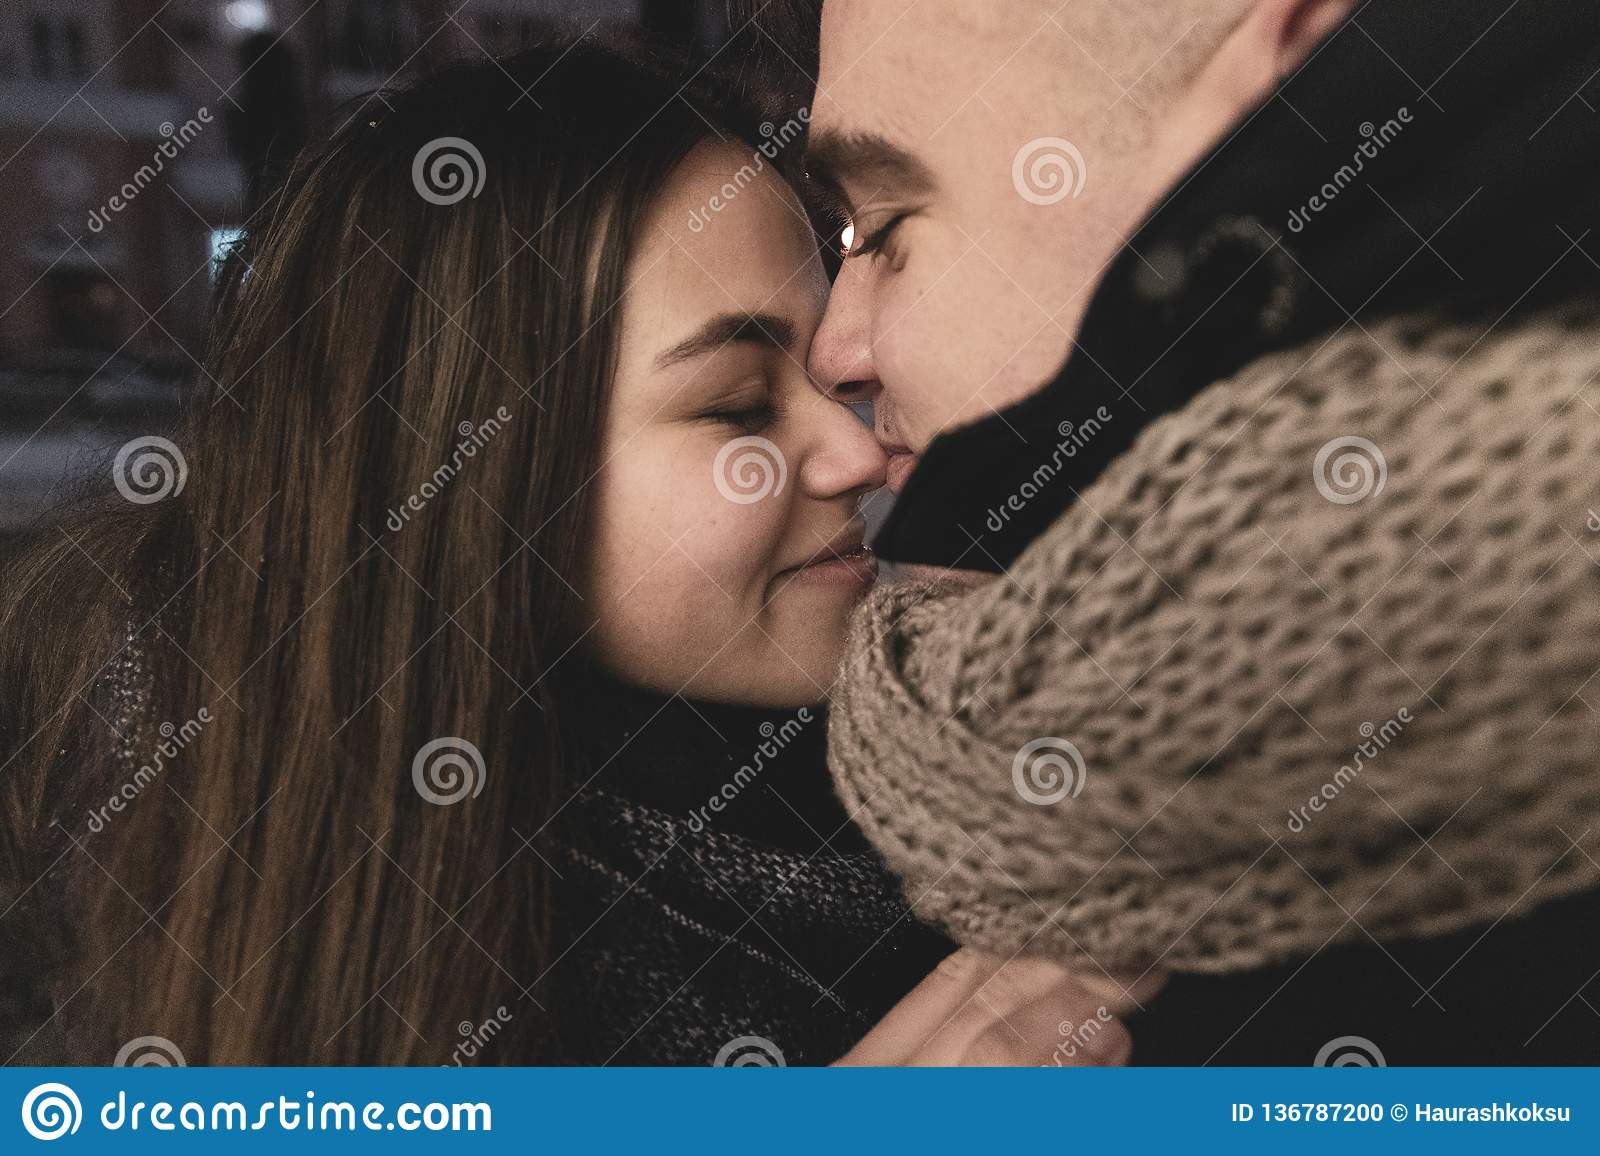 Adolescents in Love Outside the Room. Life Style. Winter Concept